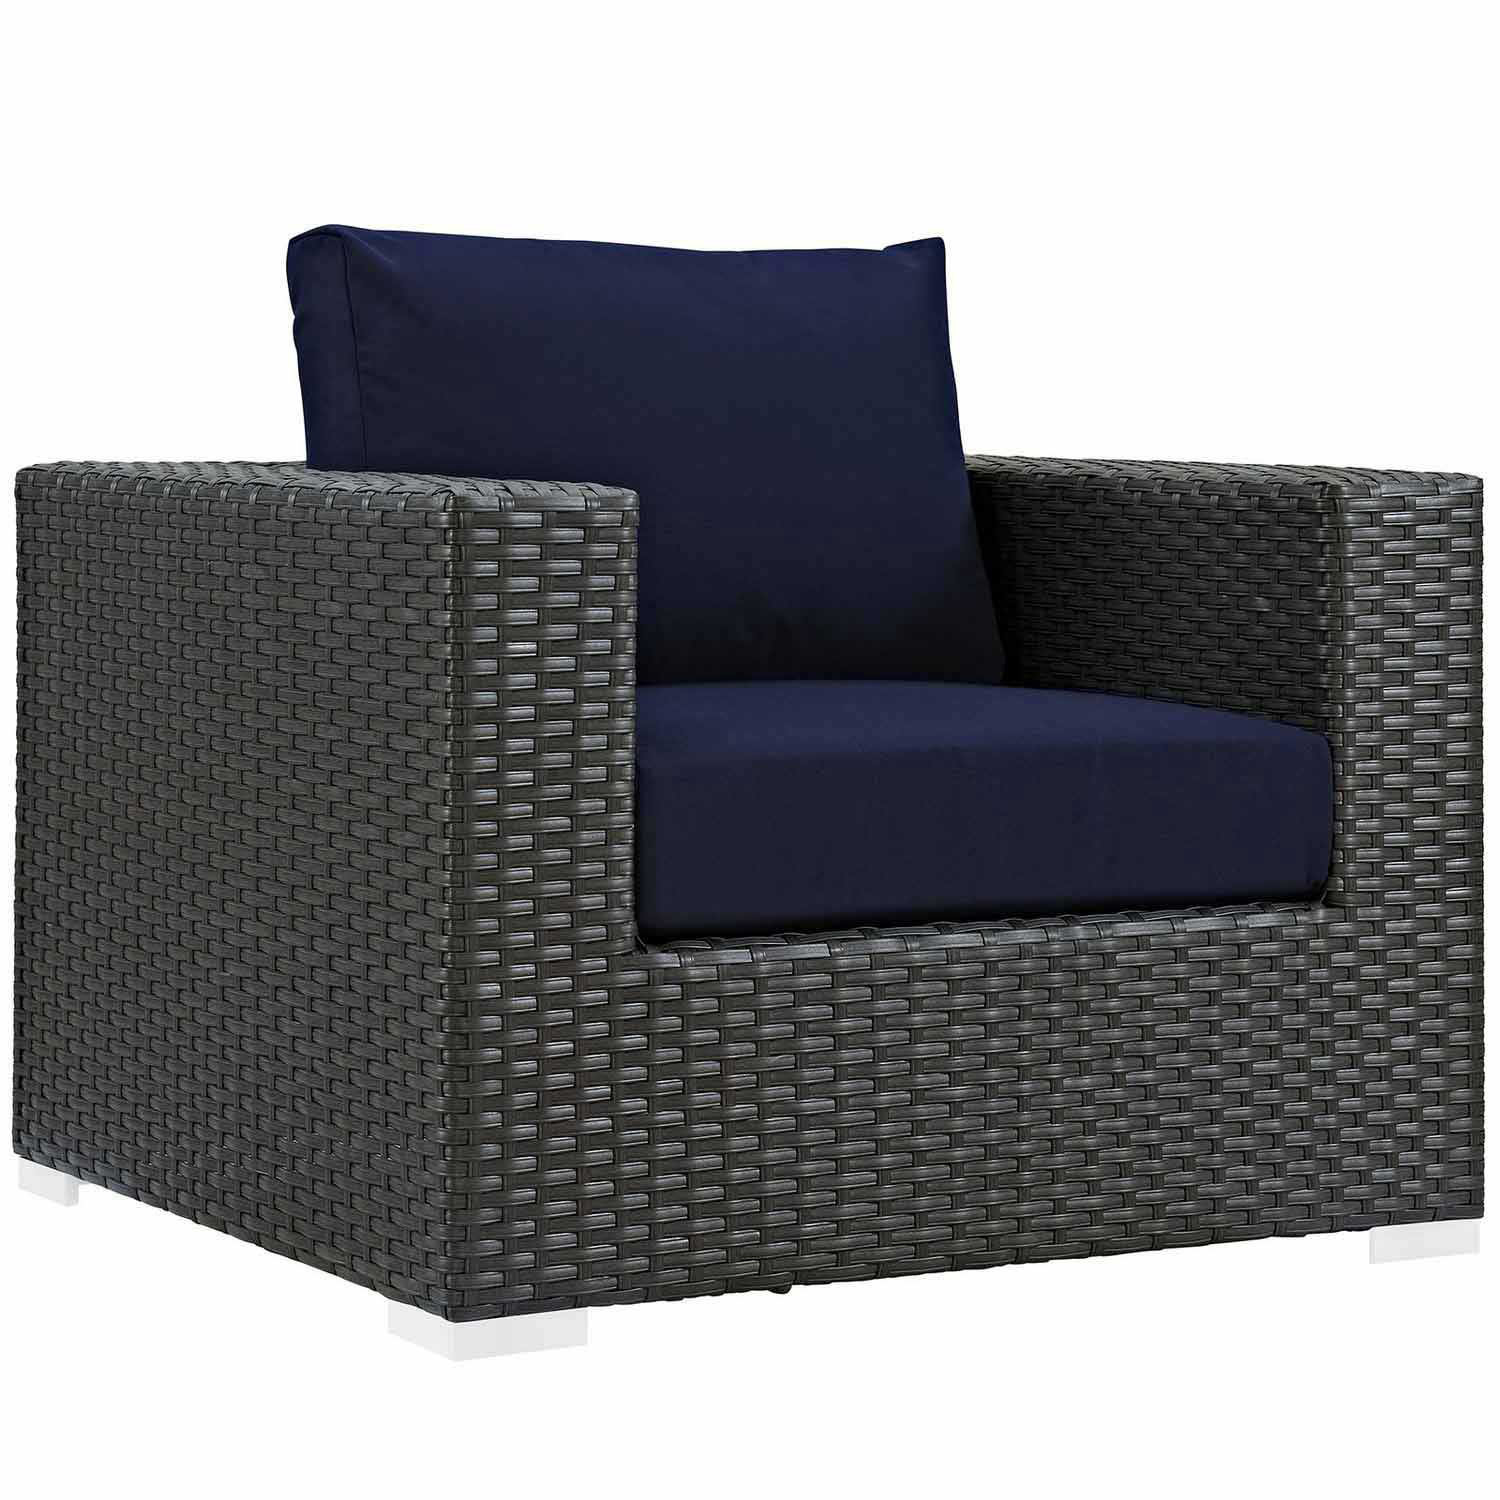 Modway Sojourn Outdoor Patio Sunbrella Arm Chair - Canvas Navy